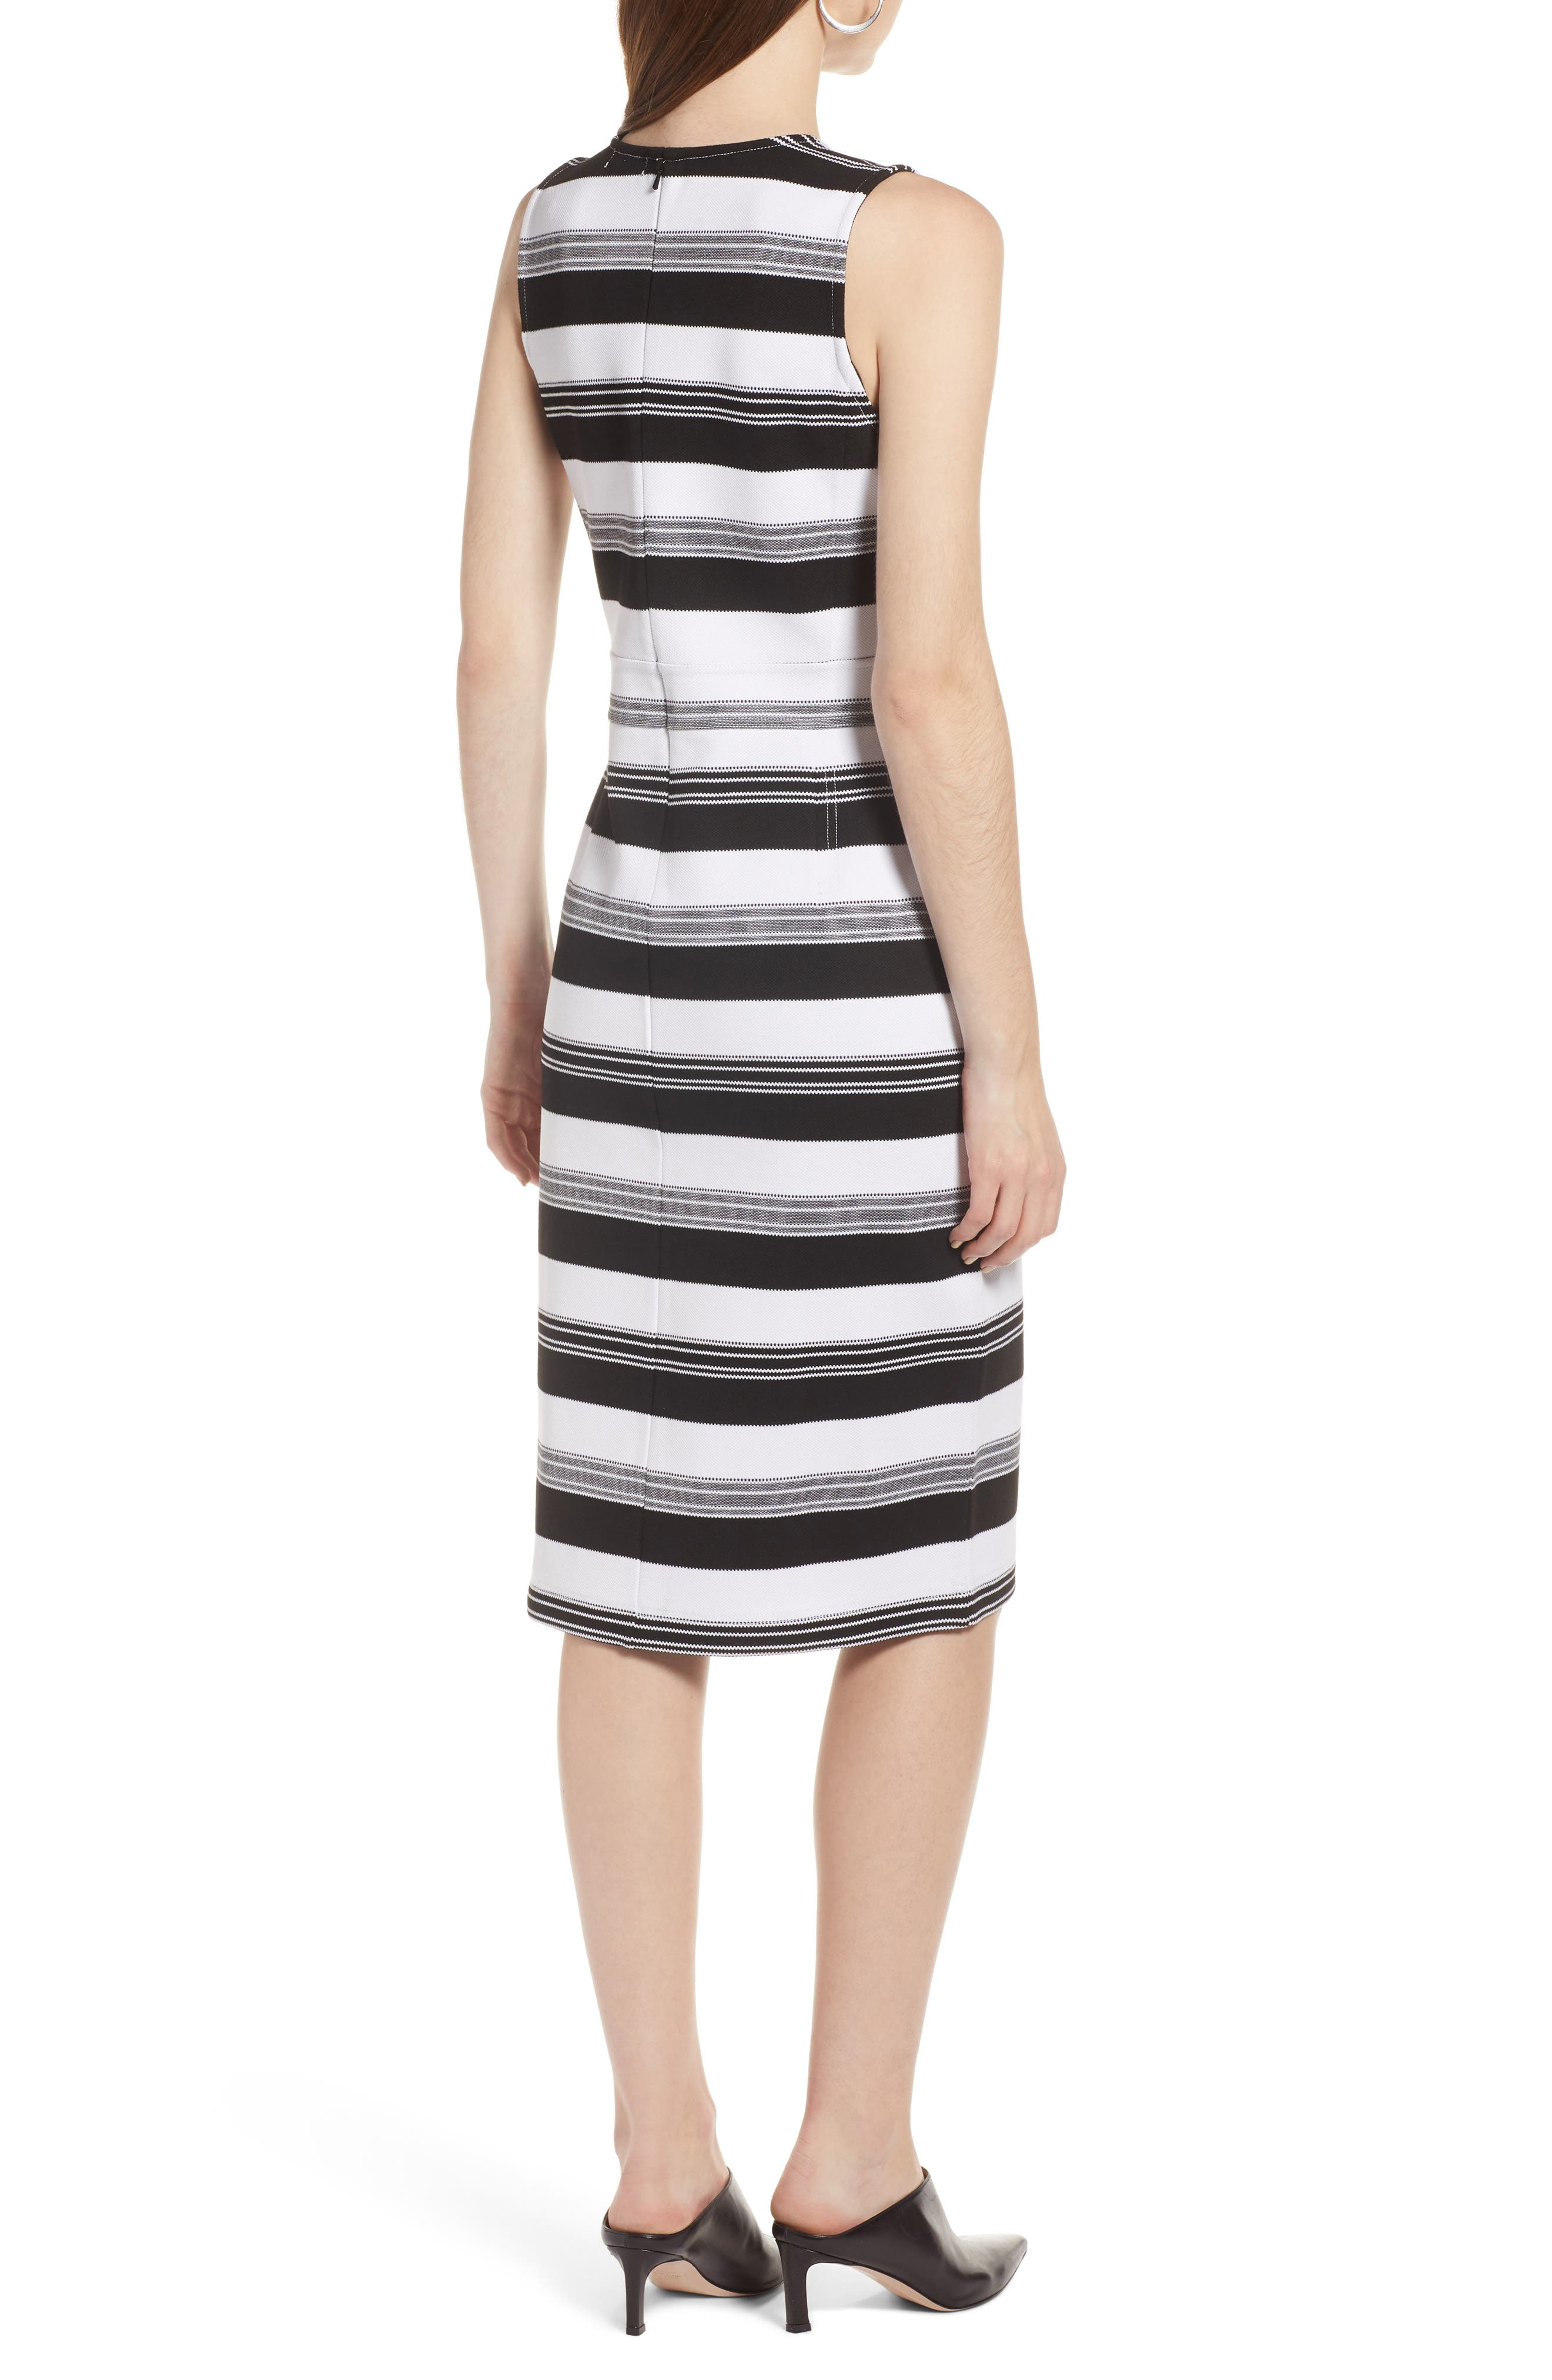 Stripe Knit Dress,                             Alternate thumbnail 2, color,                             Black- Ivory Stripe